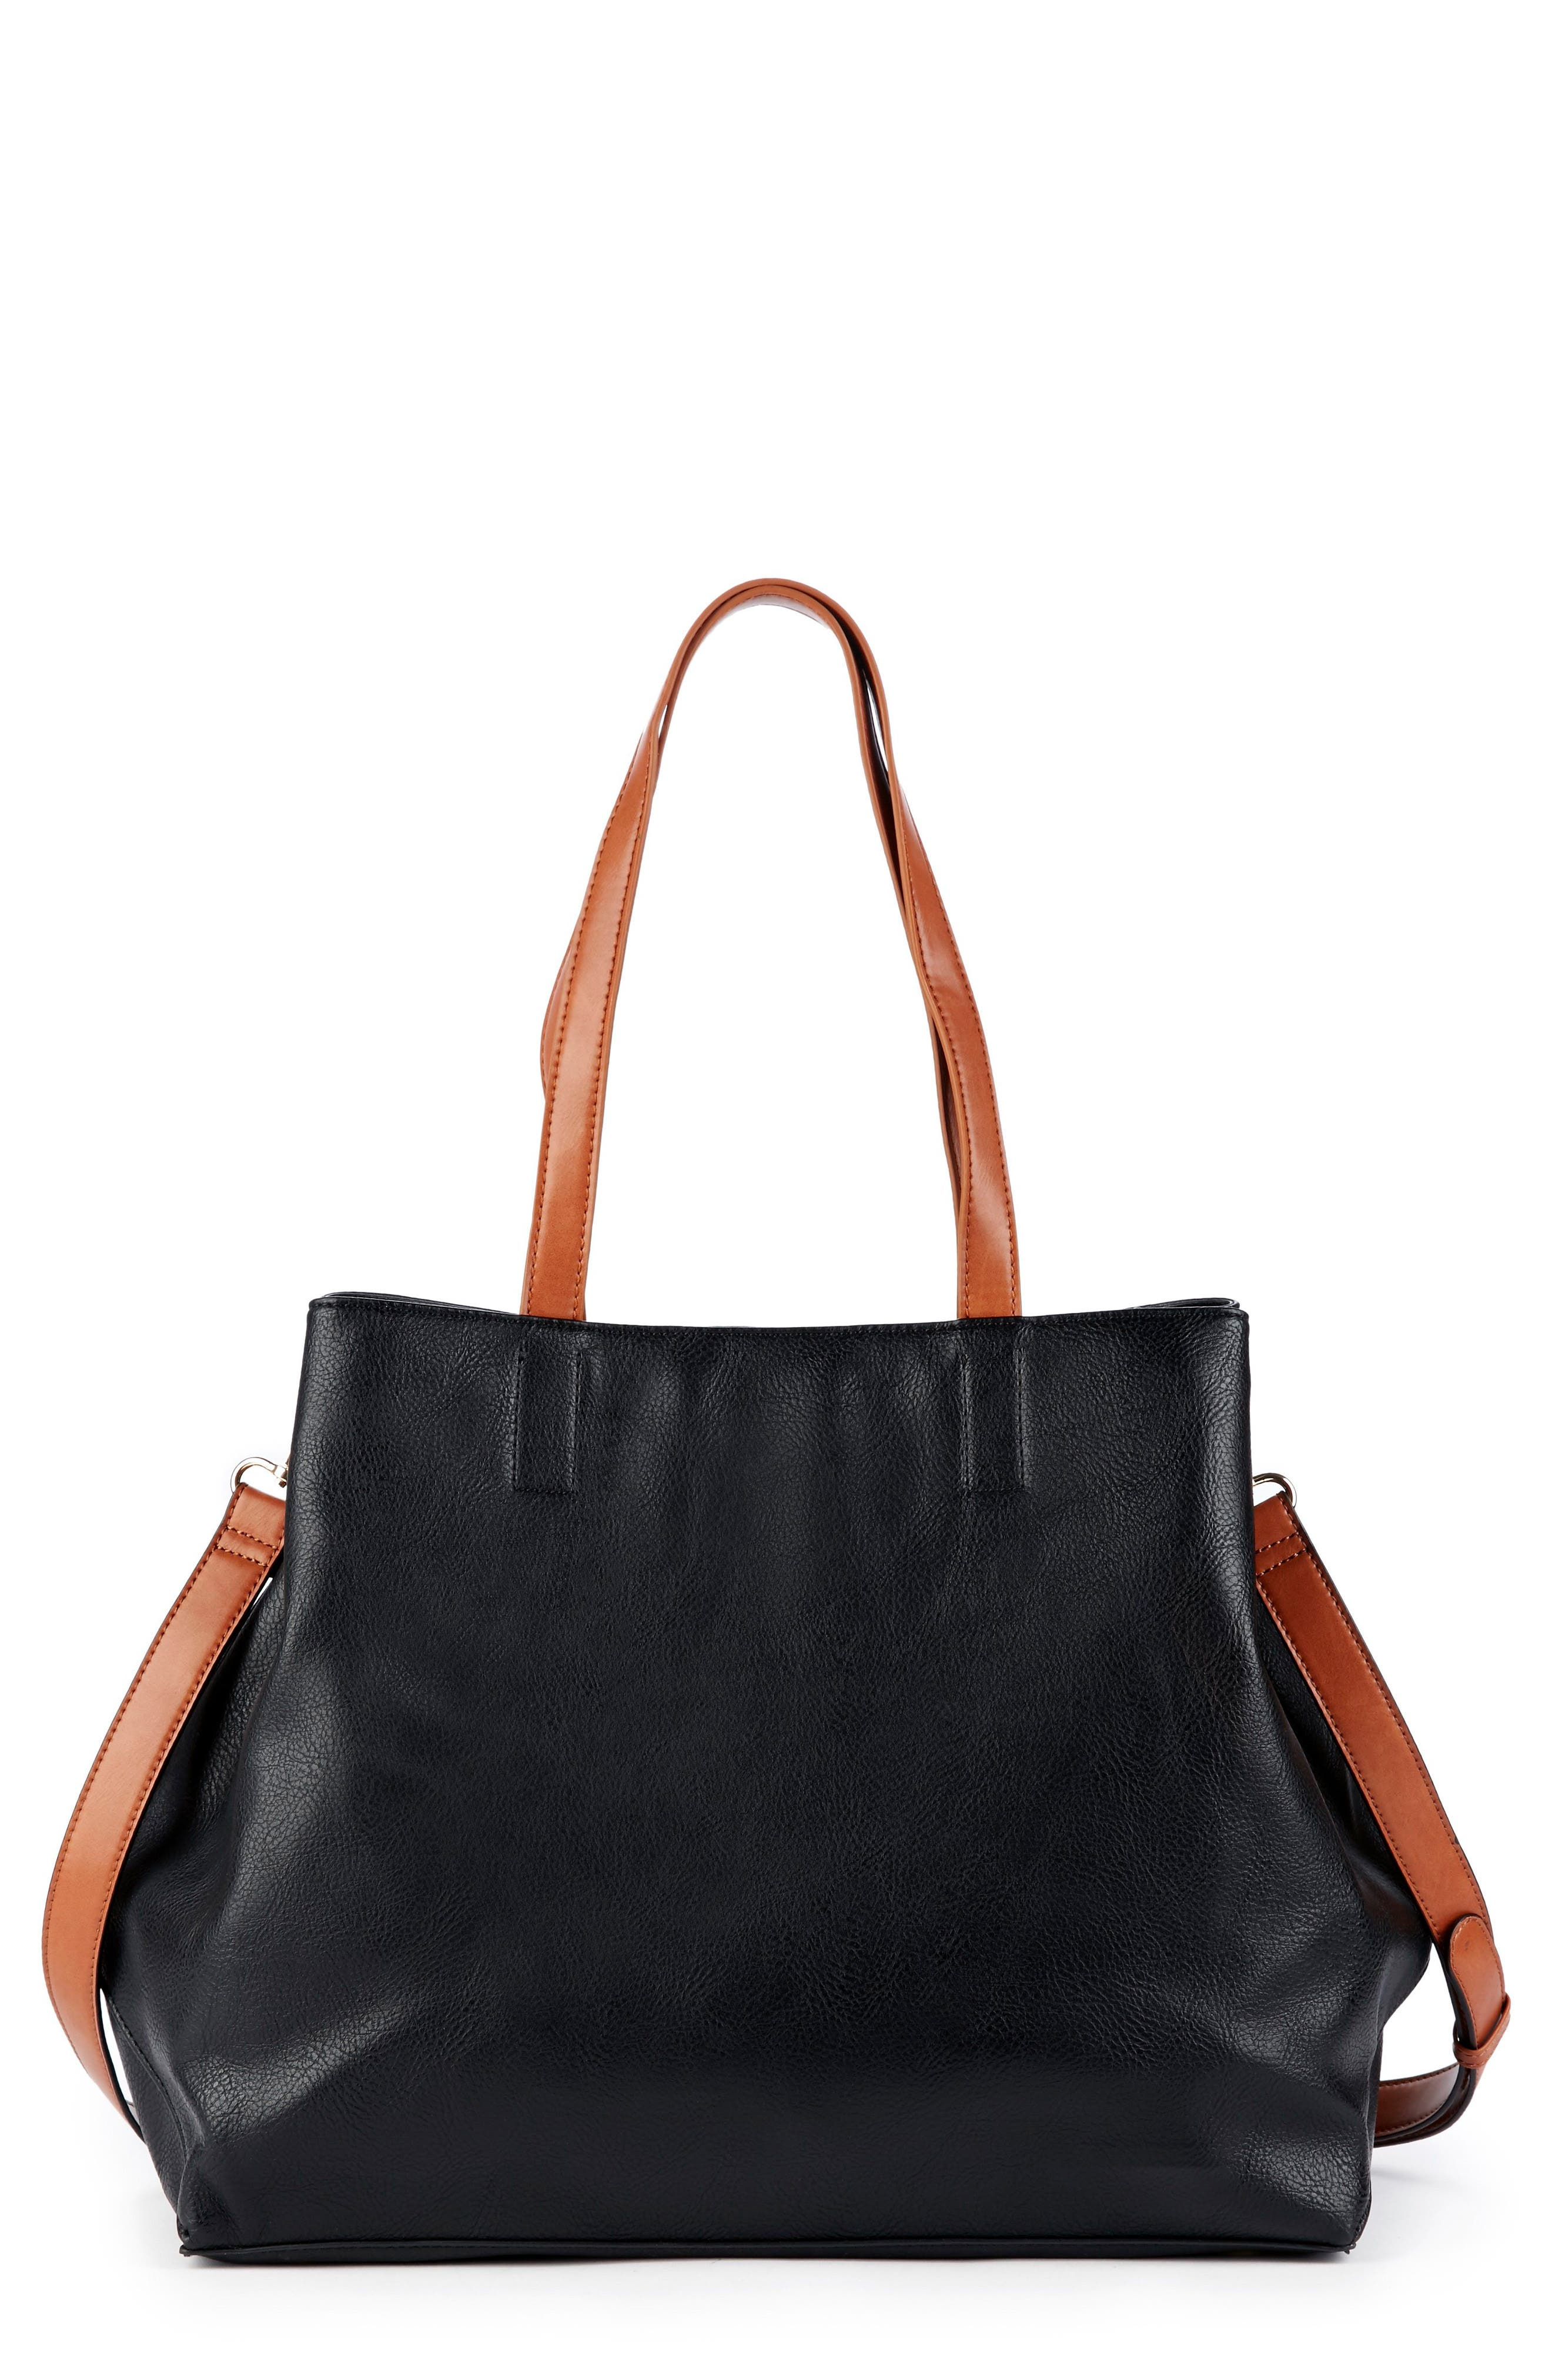 Hester Faux Leather Tote,                             Main thumbnail 1, color,                             001